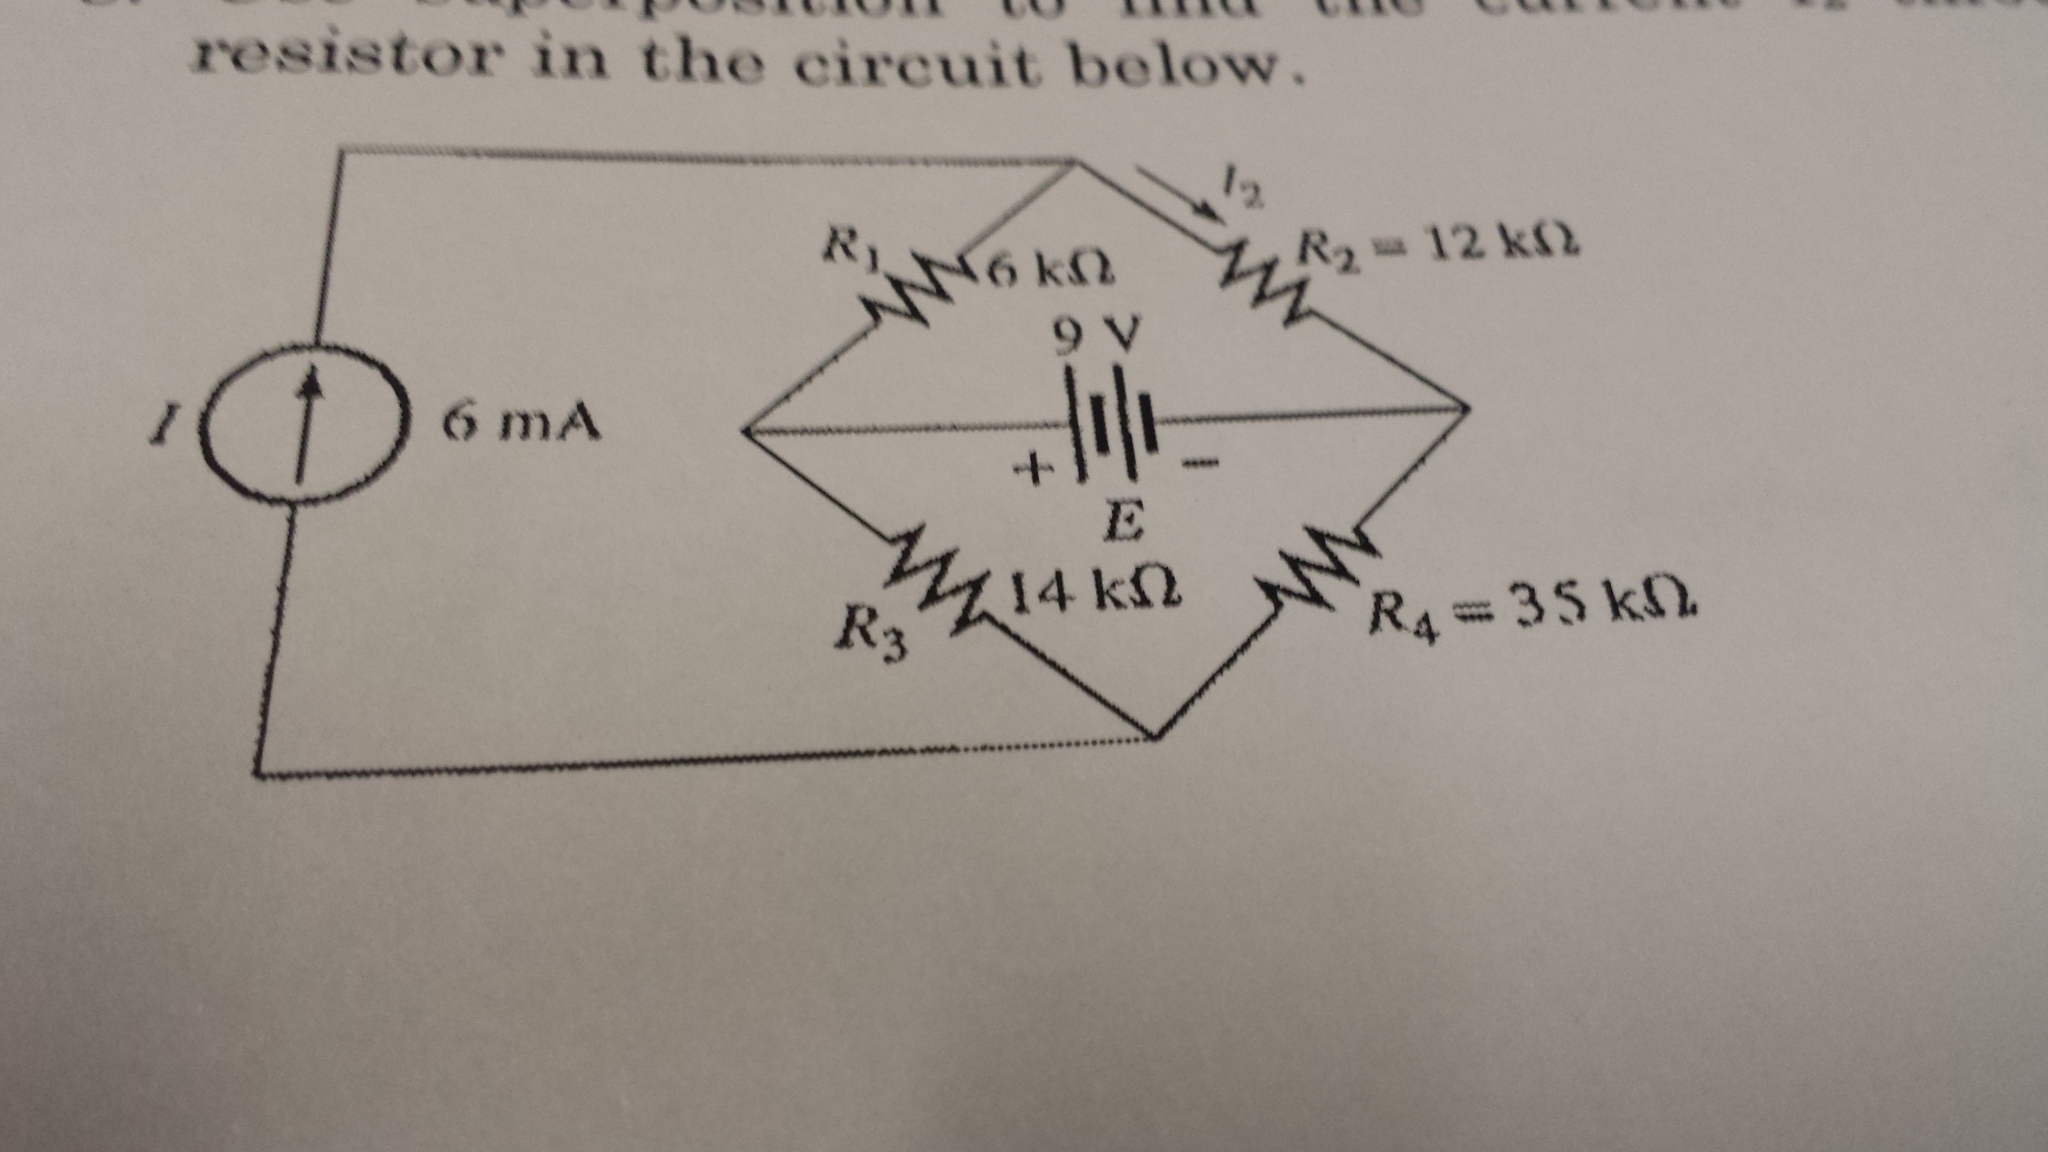 resistor in the circuit below.